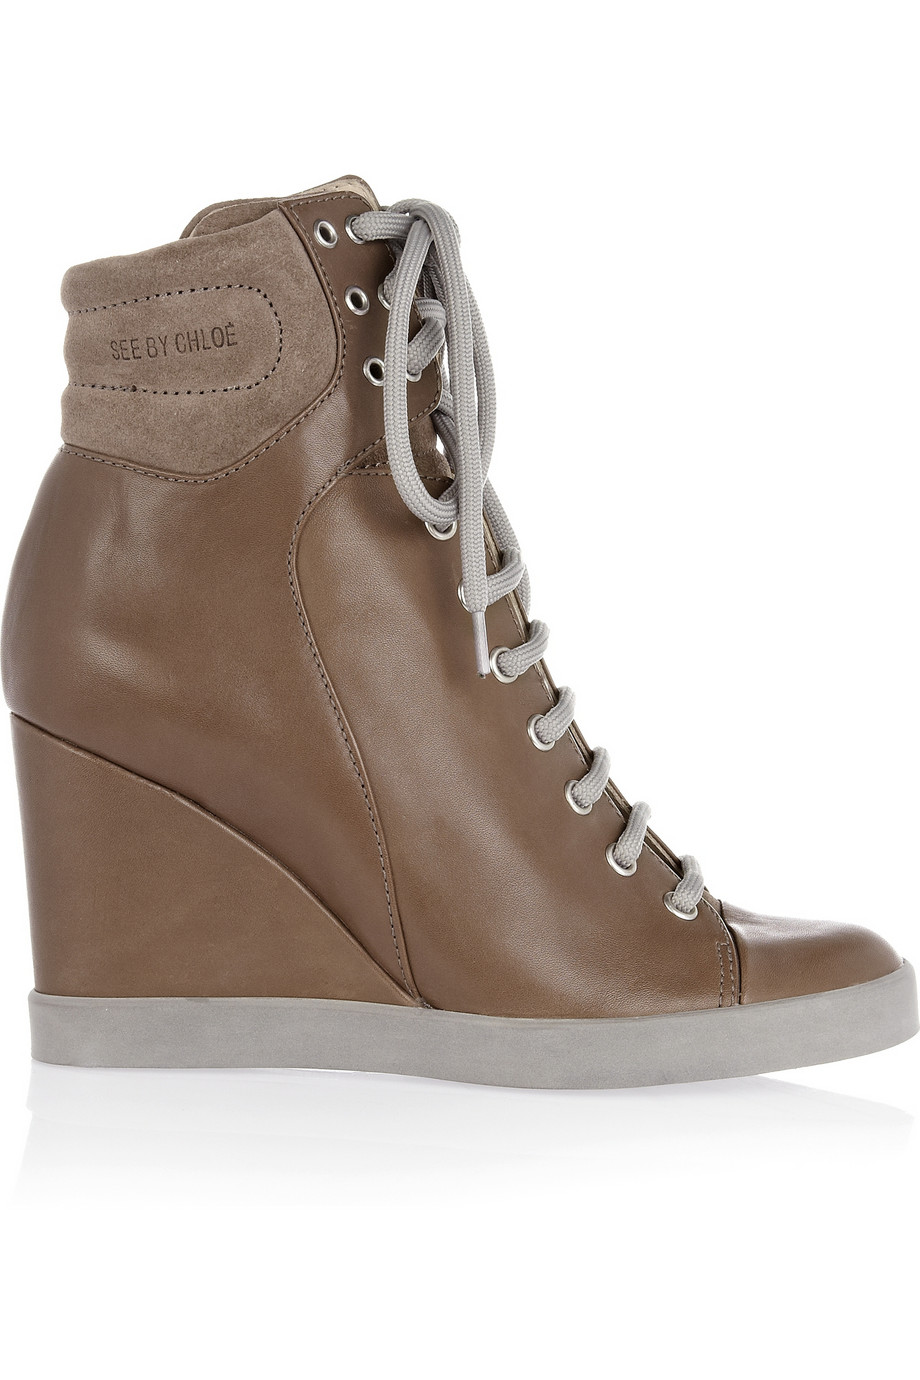 See By Chlo 233 Suede And Leather High Top Wedge Sneakers In